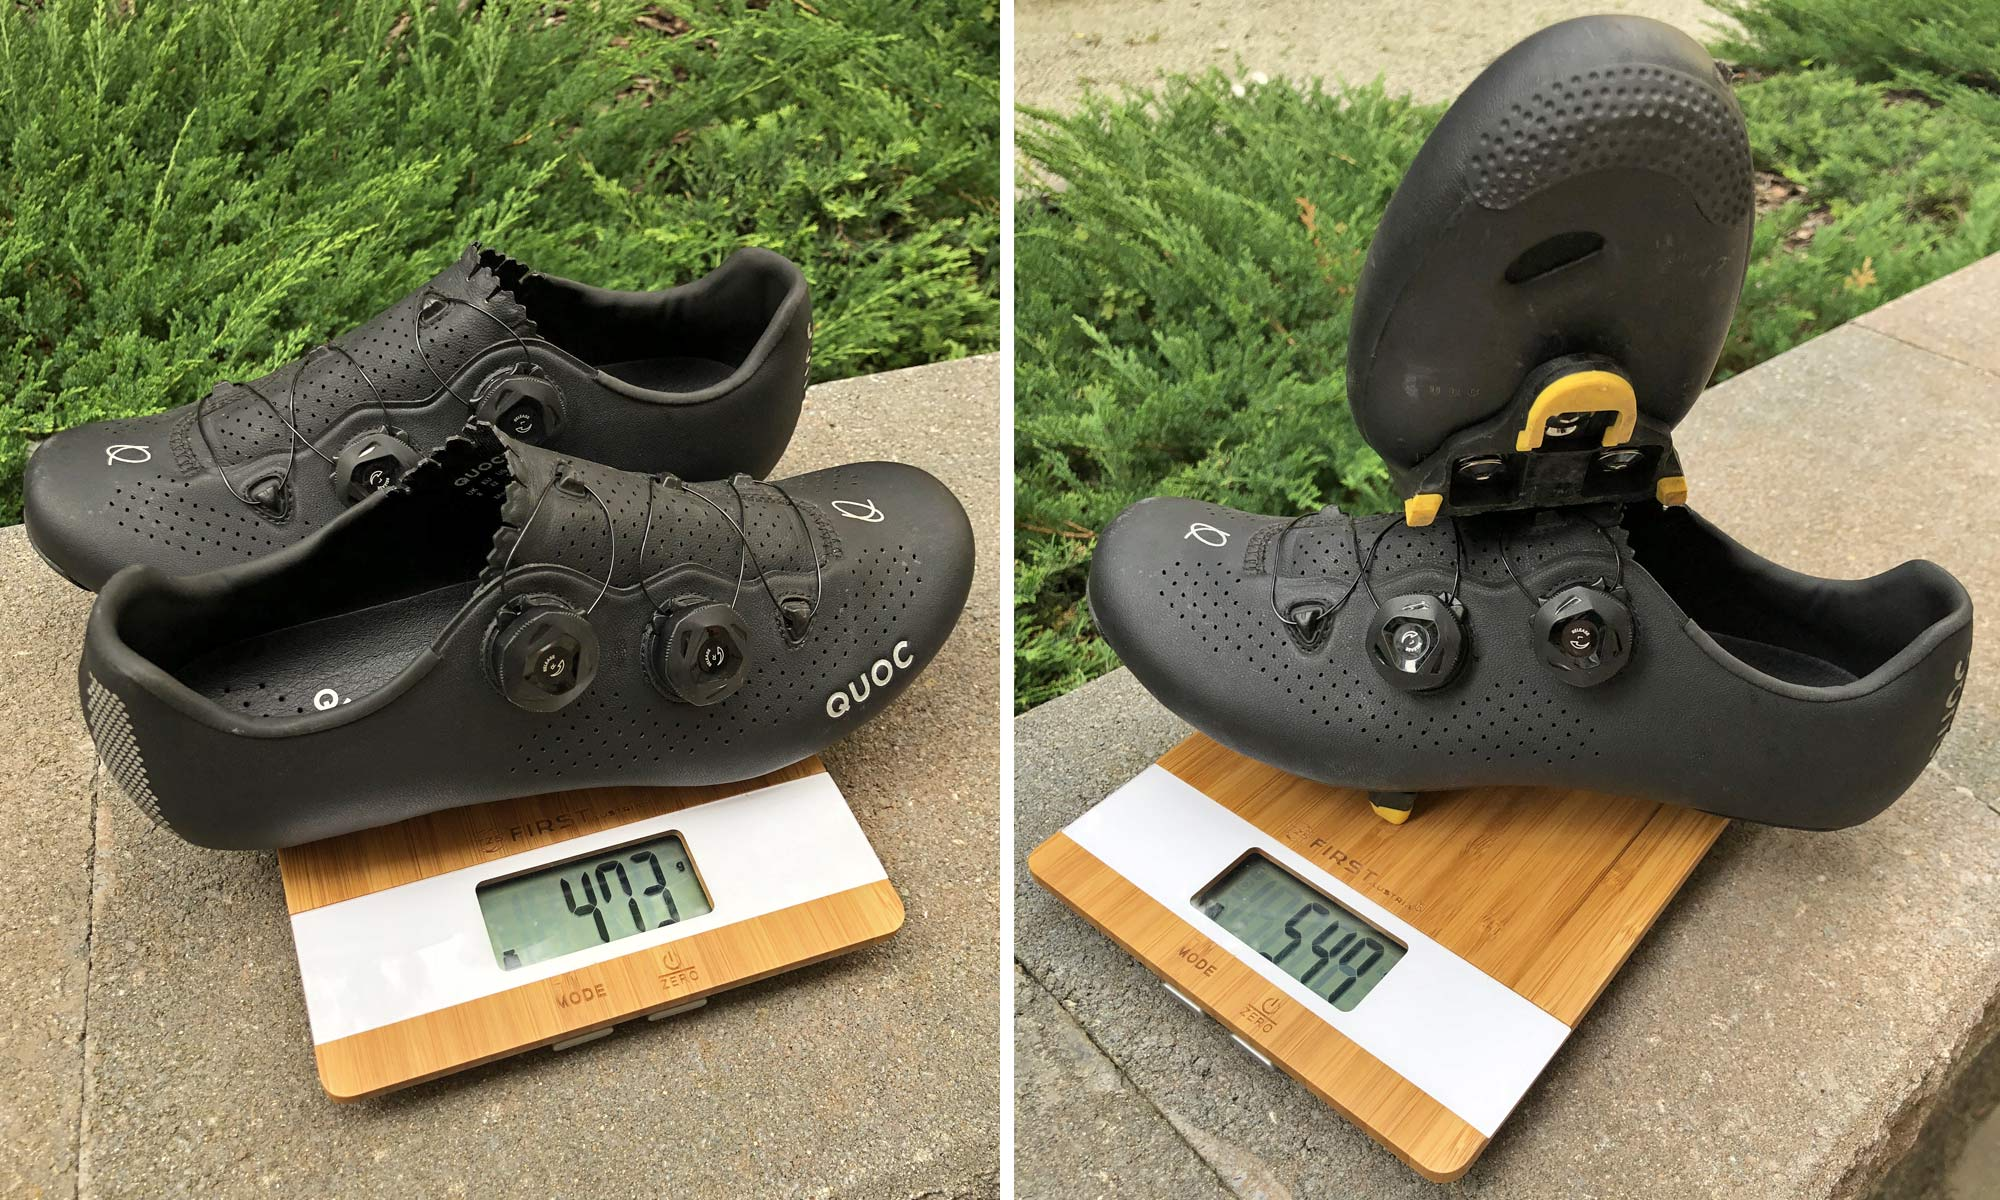 Quoc Mono II lightweight carbon-soled road cycling shoes Review,237g actual weight